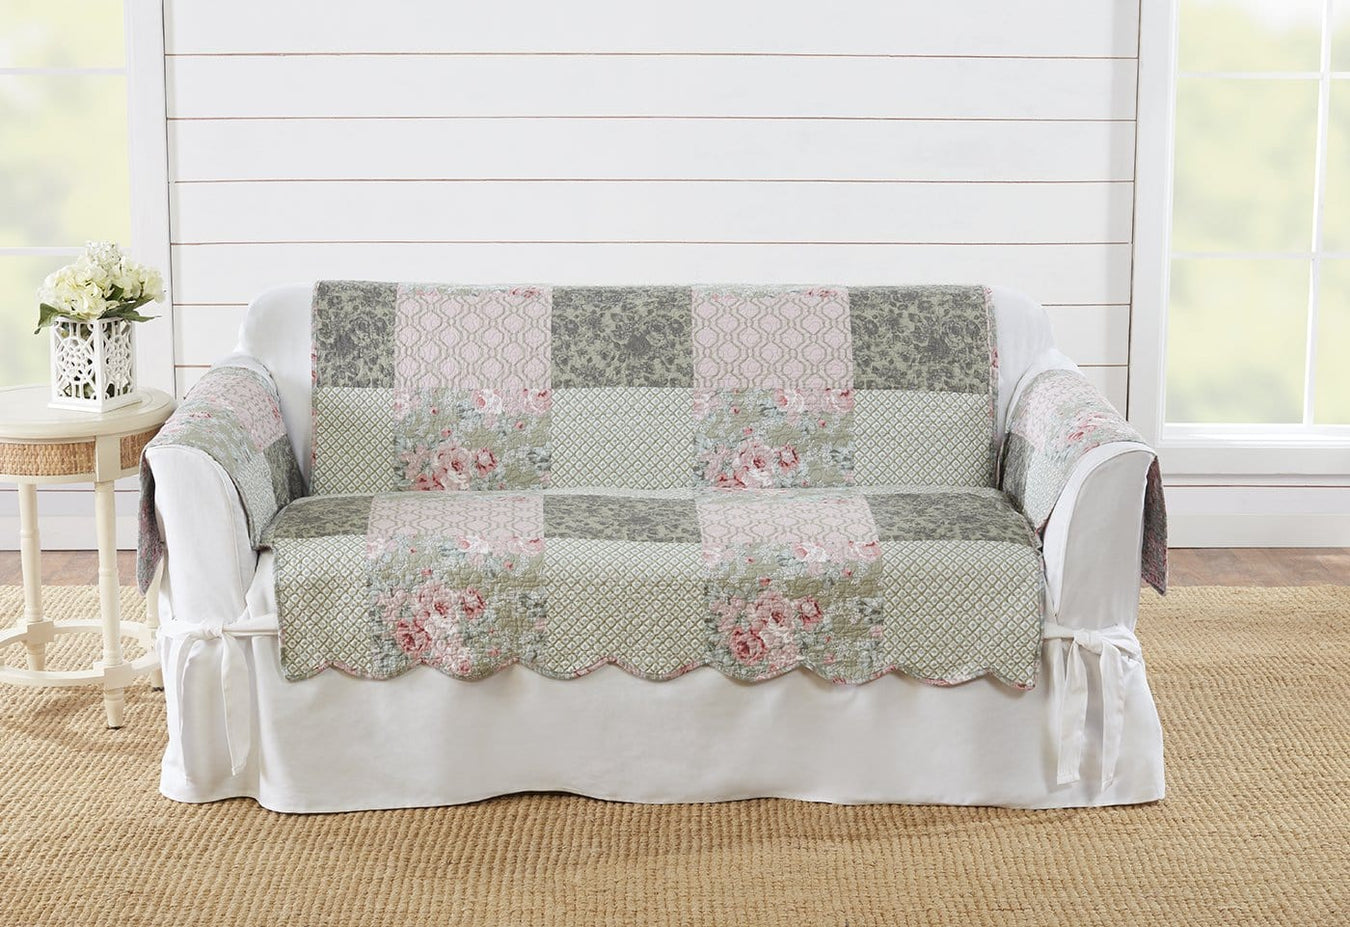 Deluxe Heirloom Reversible Loveseat Furniture Cover